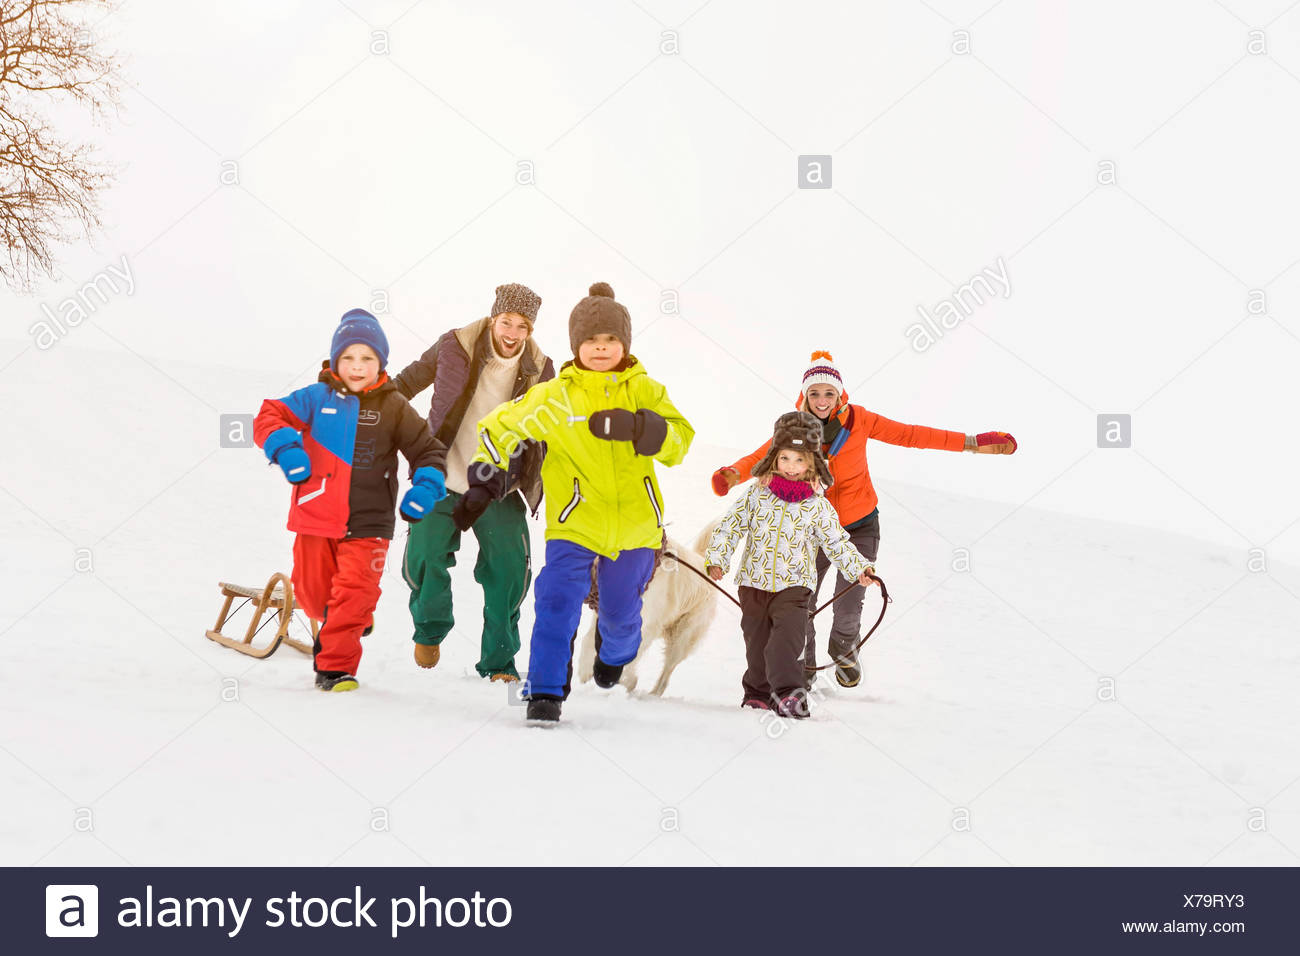 Family with three children running in snow - Stock Image